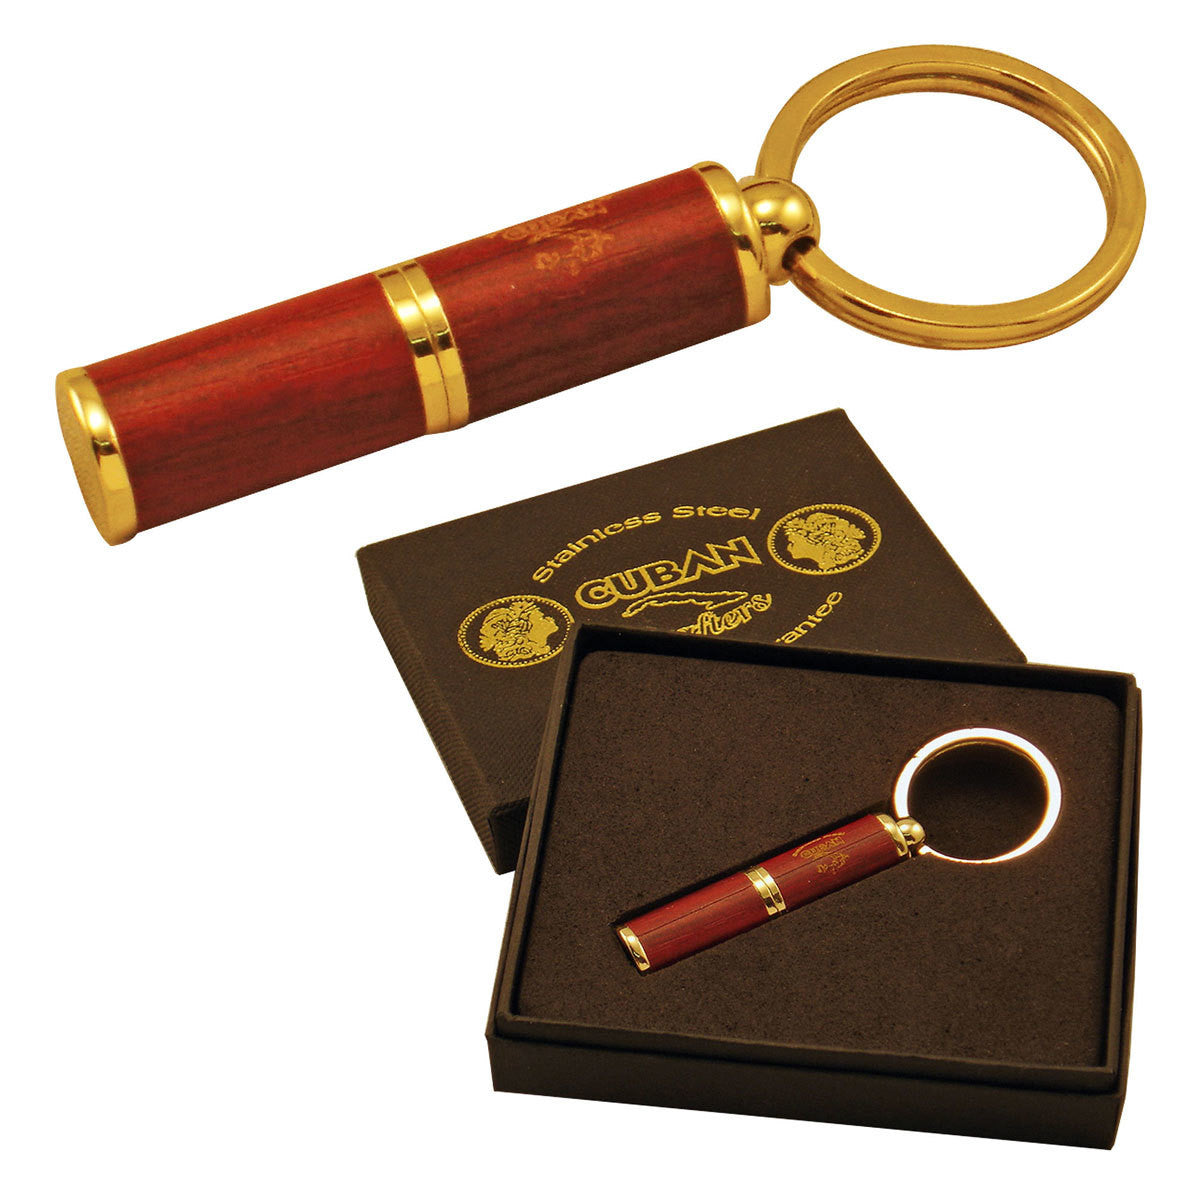 Punch Cigar Cutters all Stainless Steel Blade Cutter with RoseWood Body